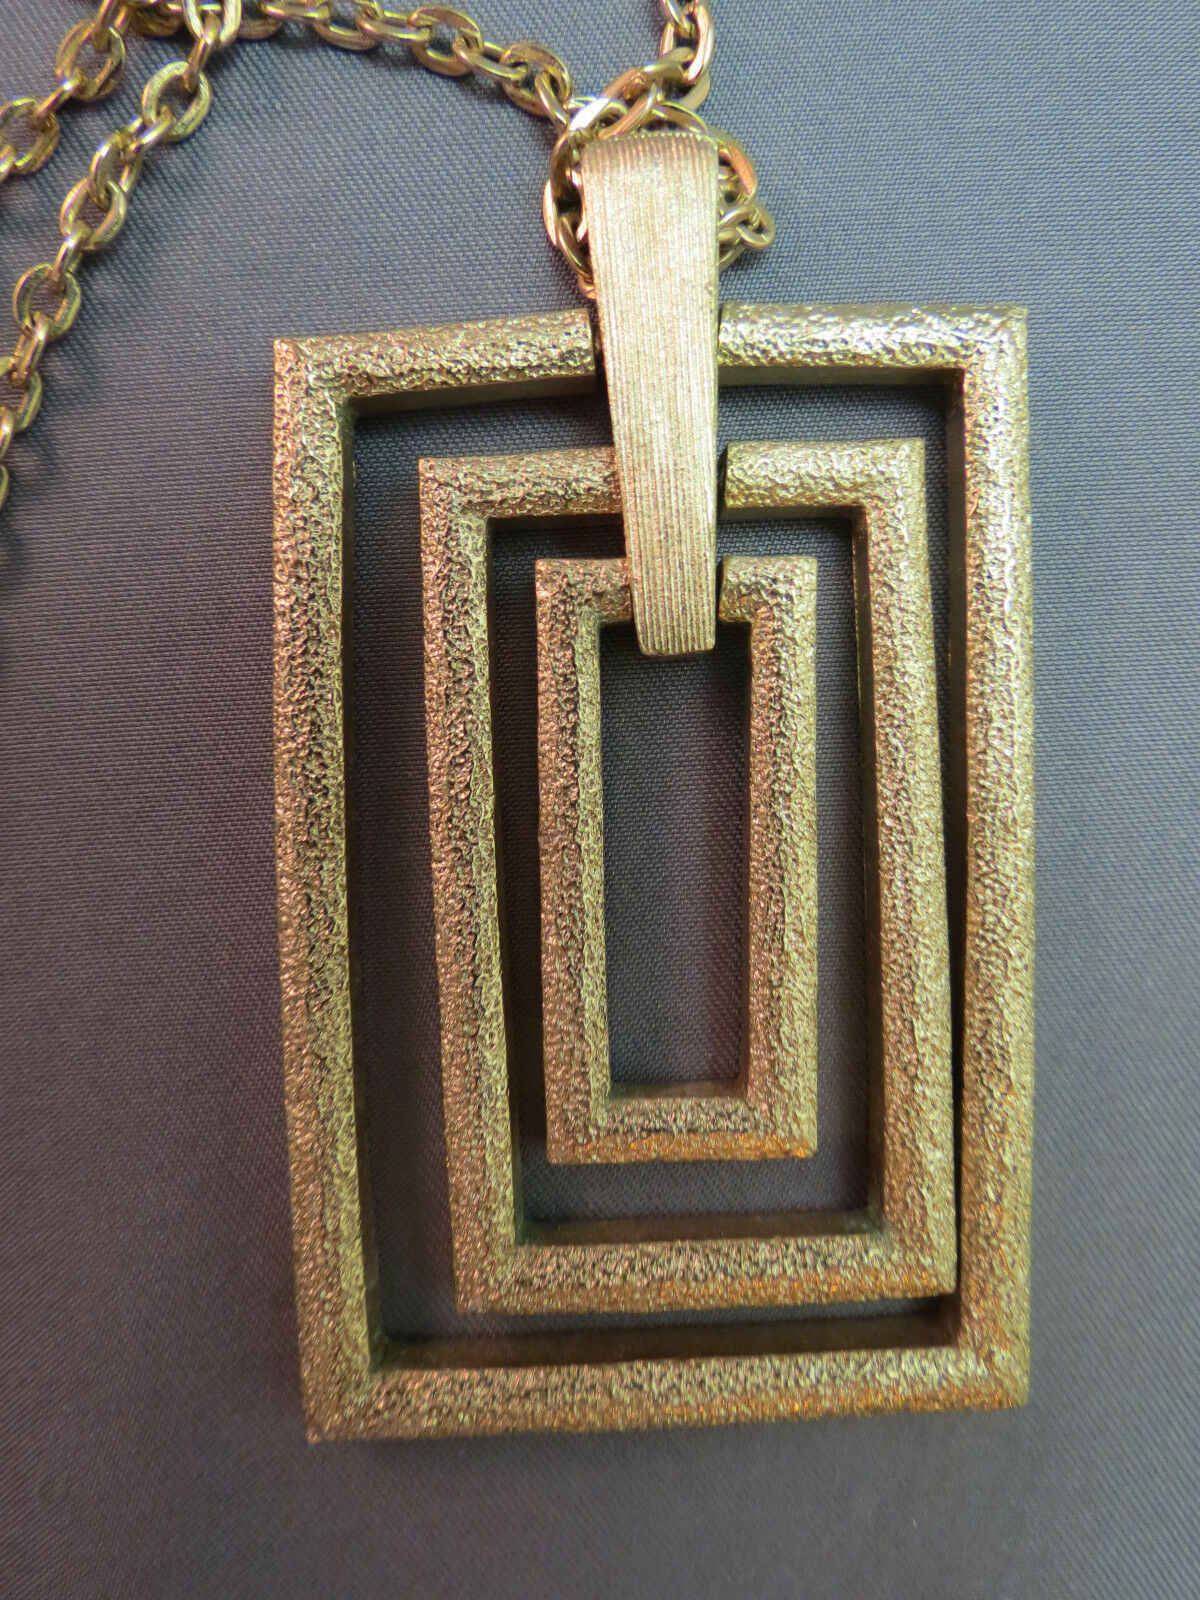 Couture Sarah Coventry Pendant Necklace Chain Rectangular Gold Plate Texture VTG image 4